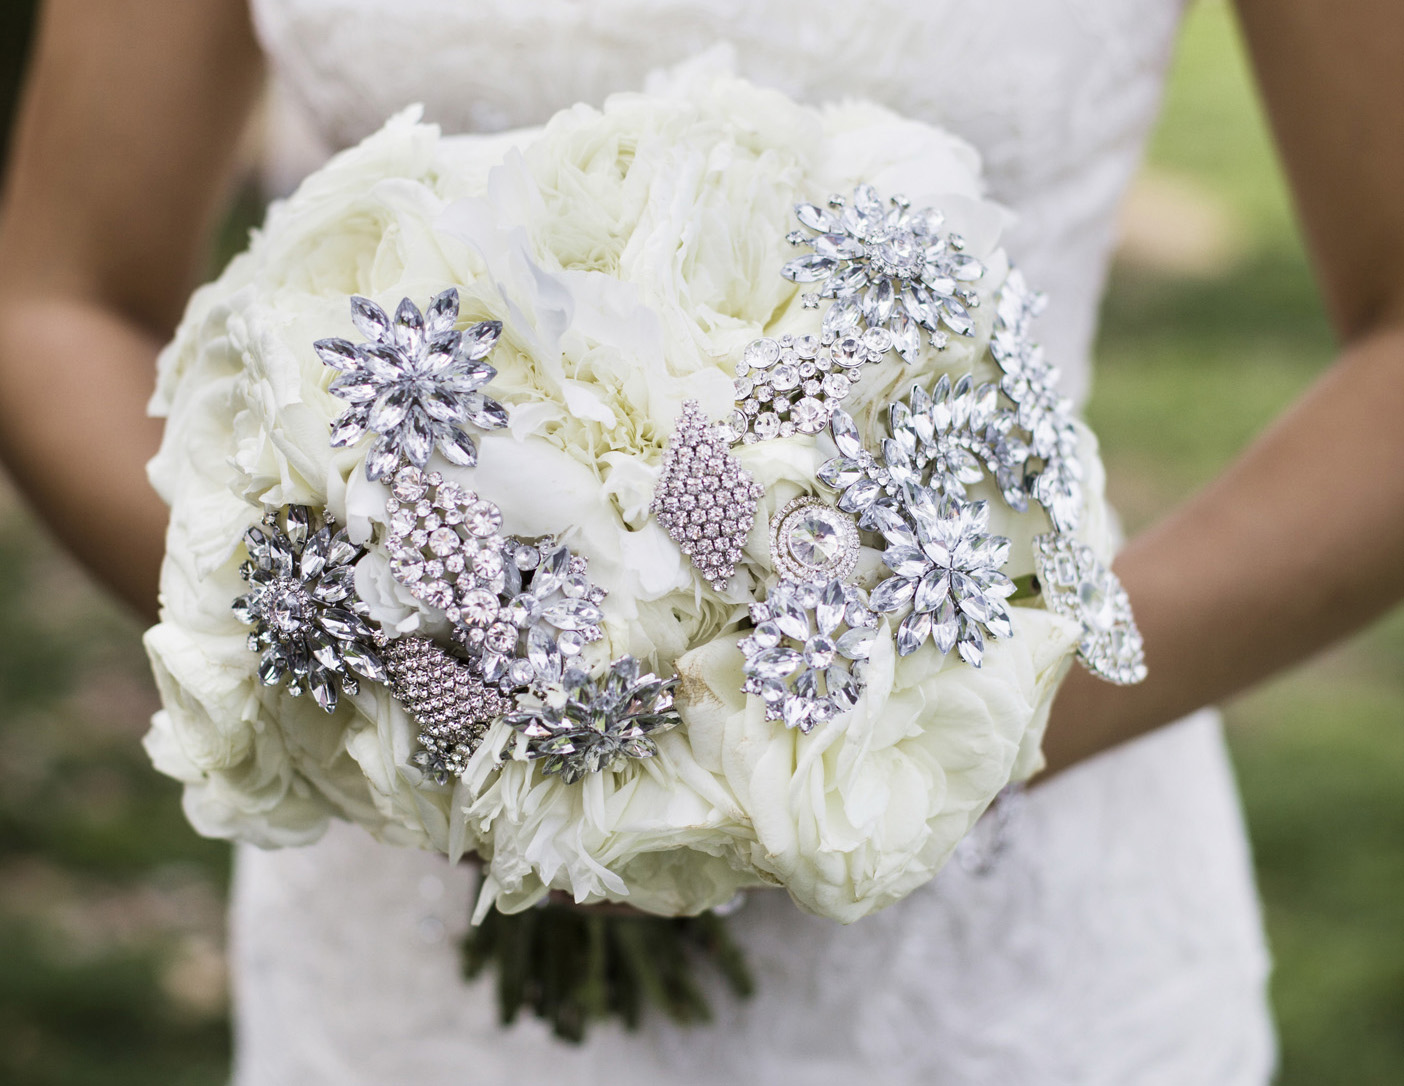 Wedding Flowers How To Bling Out Your Bridal Bouquet Inside Weddings